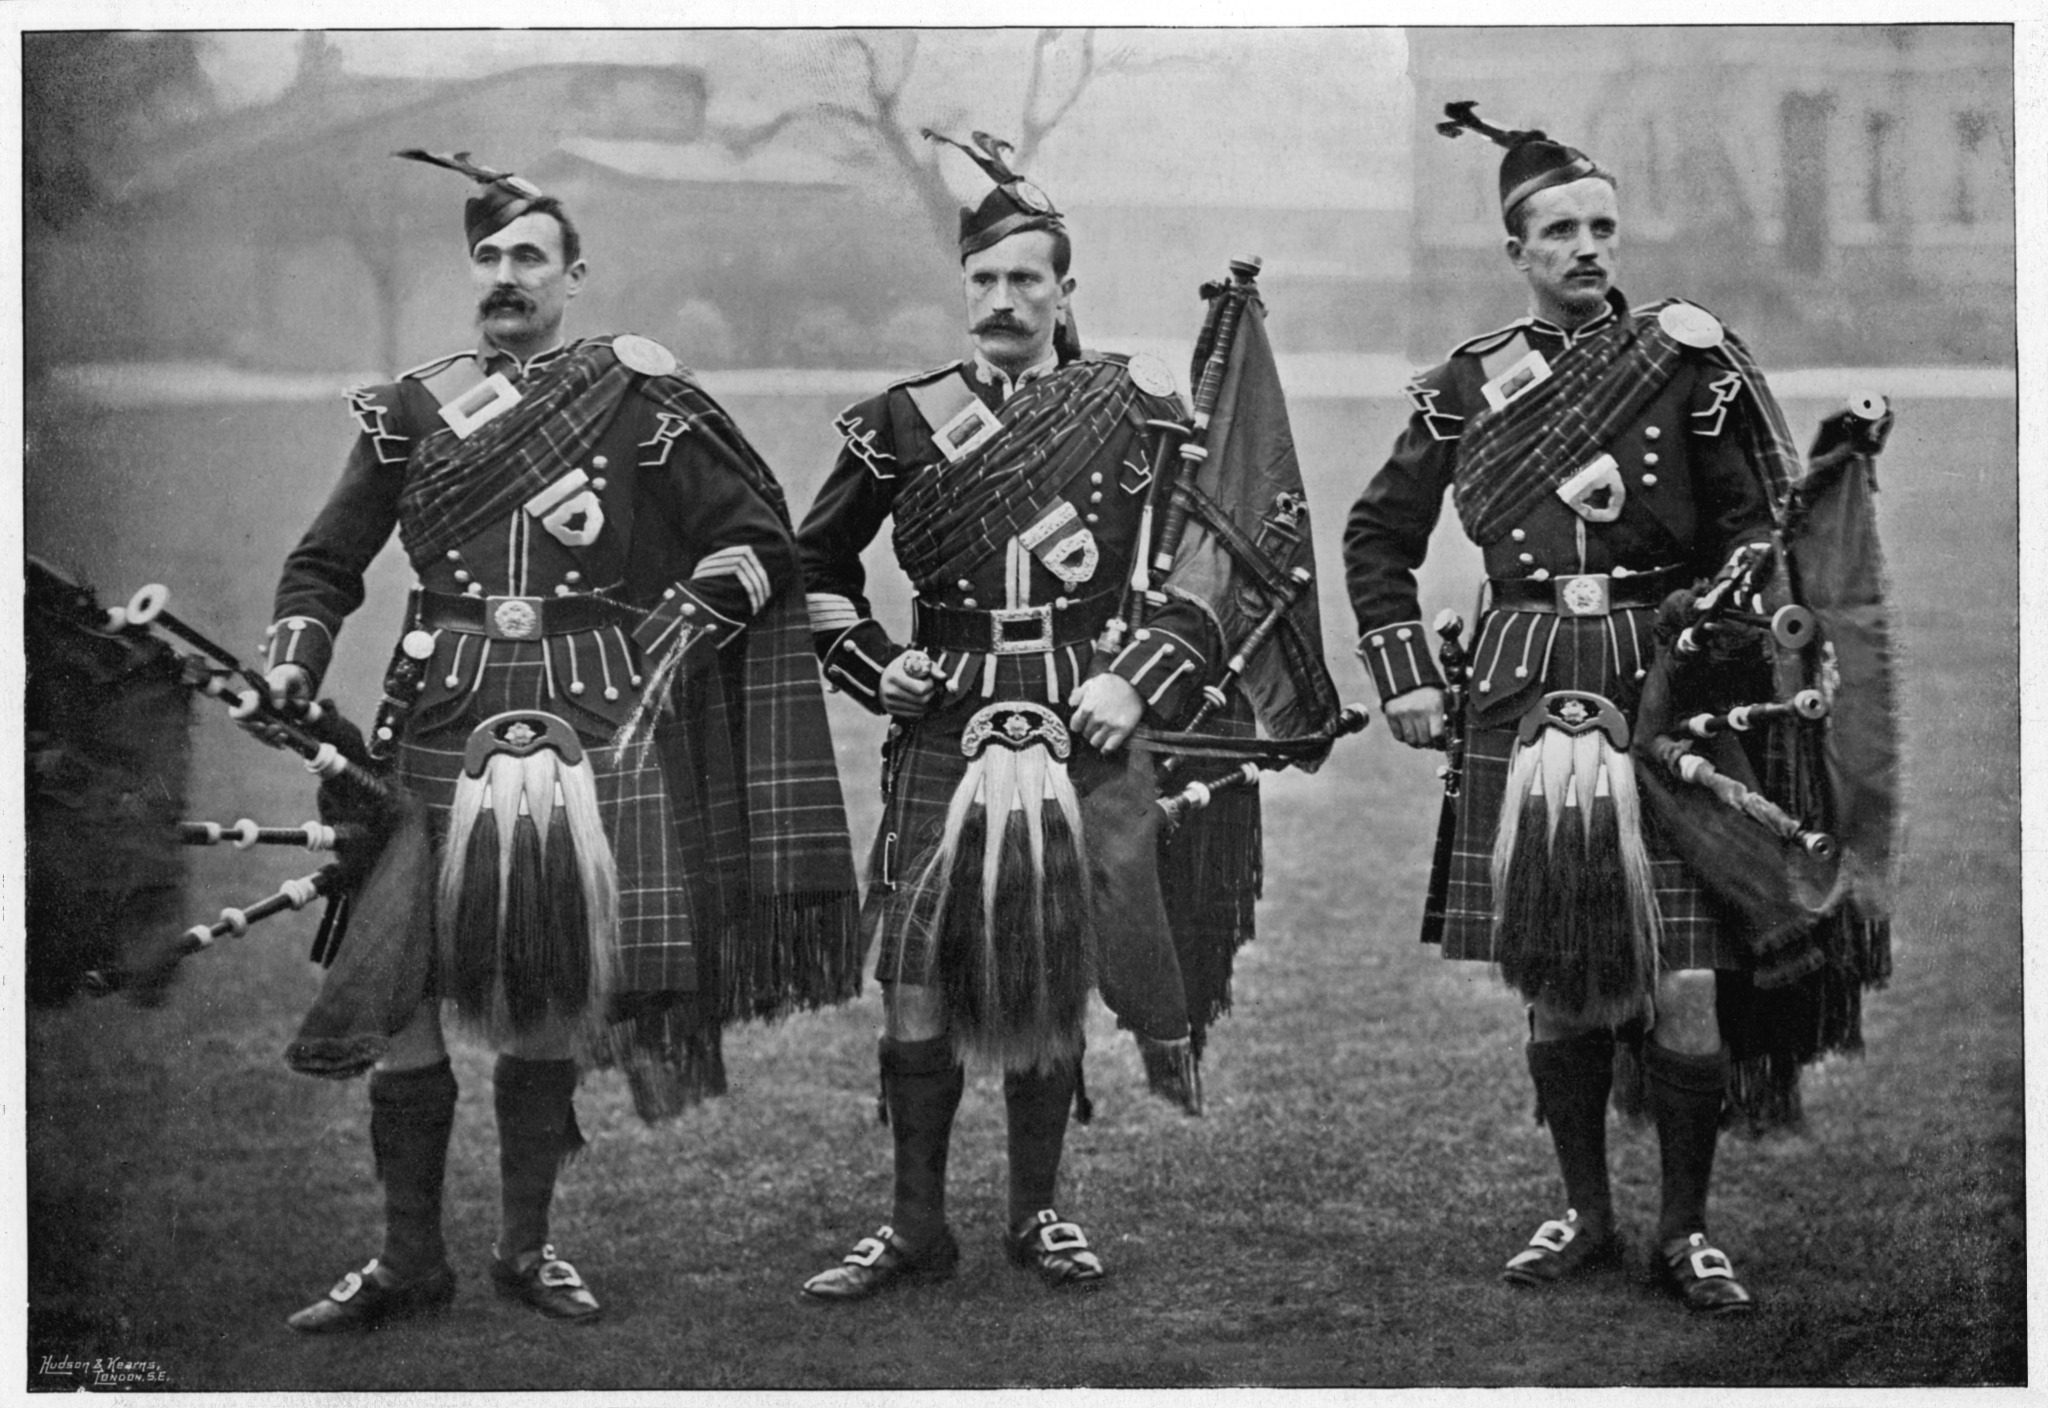 Three men in a black and white historical photo wearing sporrans and bagpipes.